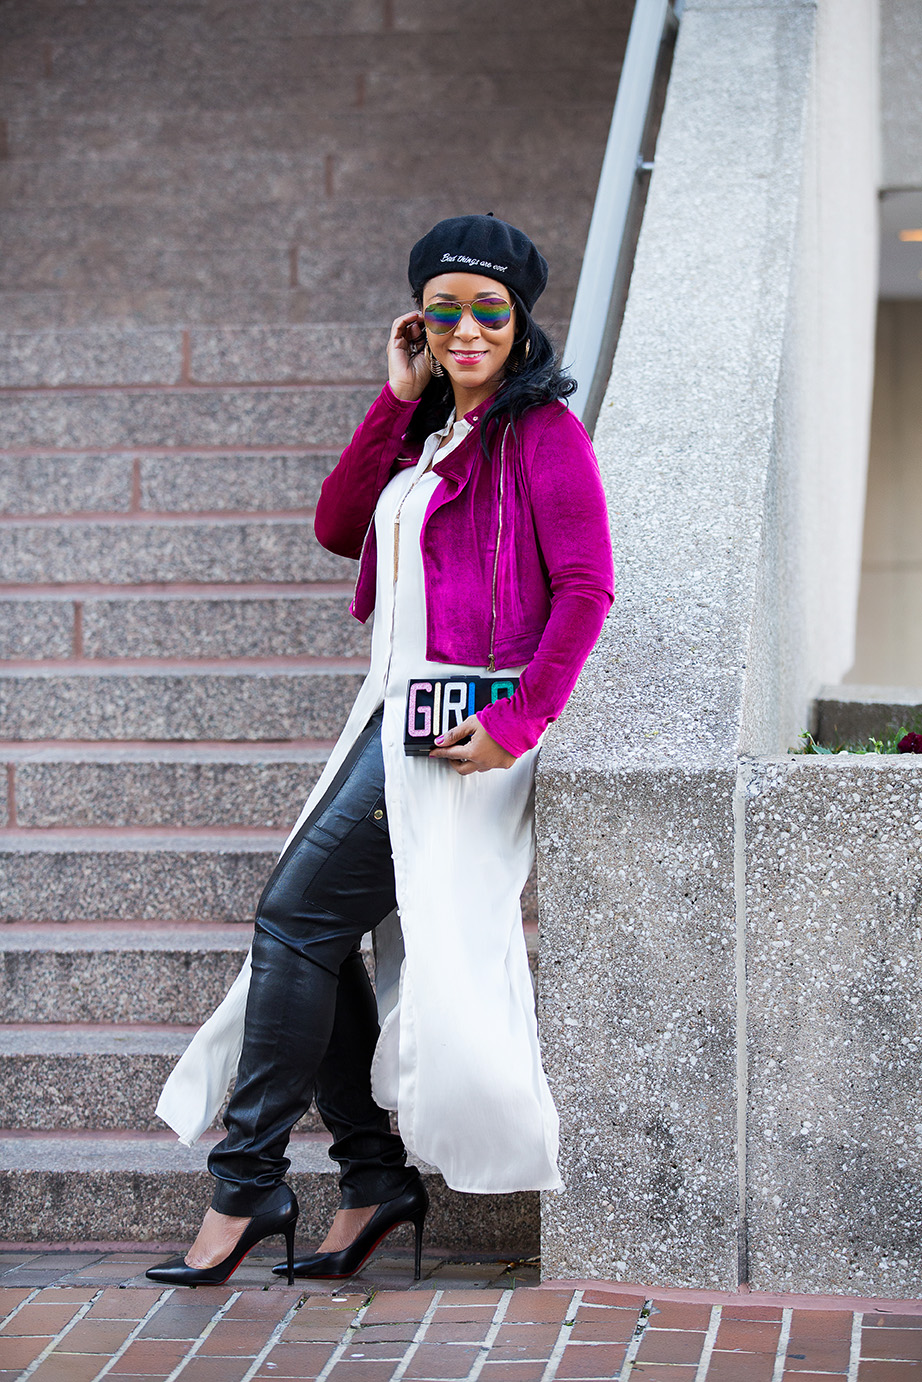 Three Holiday Trends and Gift Ideas For Your Girls: velvet, acrylic, lucite and resin minaudieures and box clutches, Charming Charlie Girls Resin Minaudiere, Agaci Pink Velvet Moto Jacket, Tory Burch Leather Cargo Pants, Christian Louboutin Pigalle Pumps, H&M Long Blouse, Bershka  Beret with embroidered slogan, Bad things are cool, Forever 21 rainbow aviator sunglasses